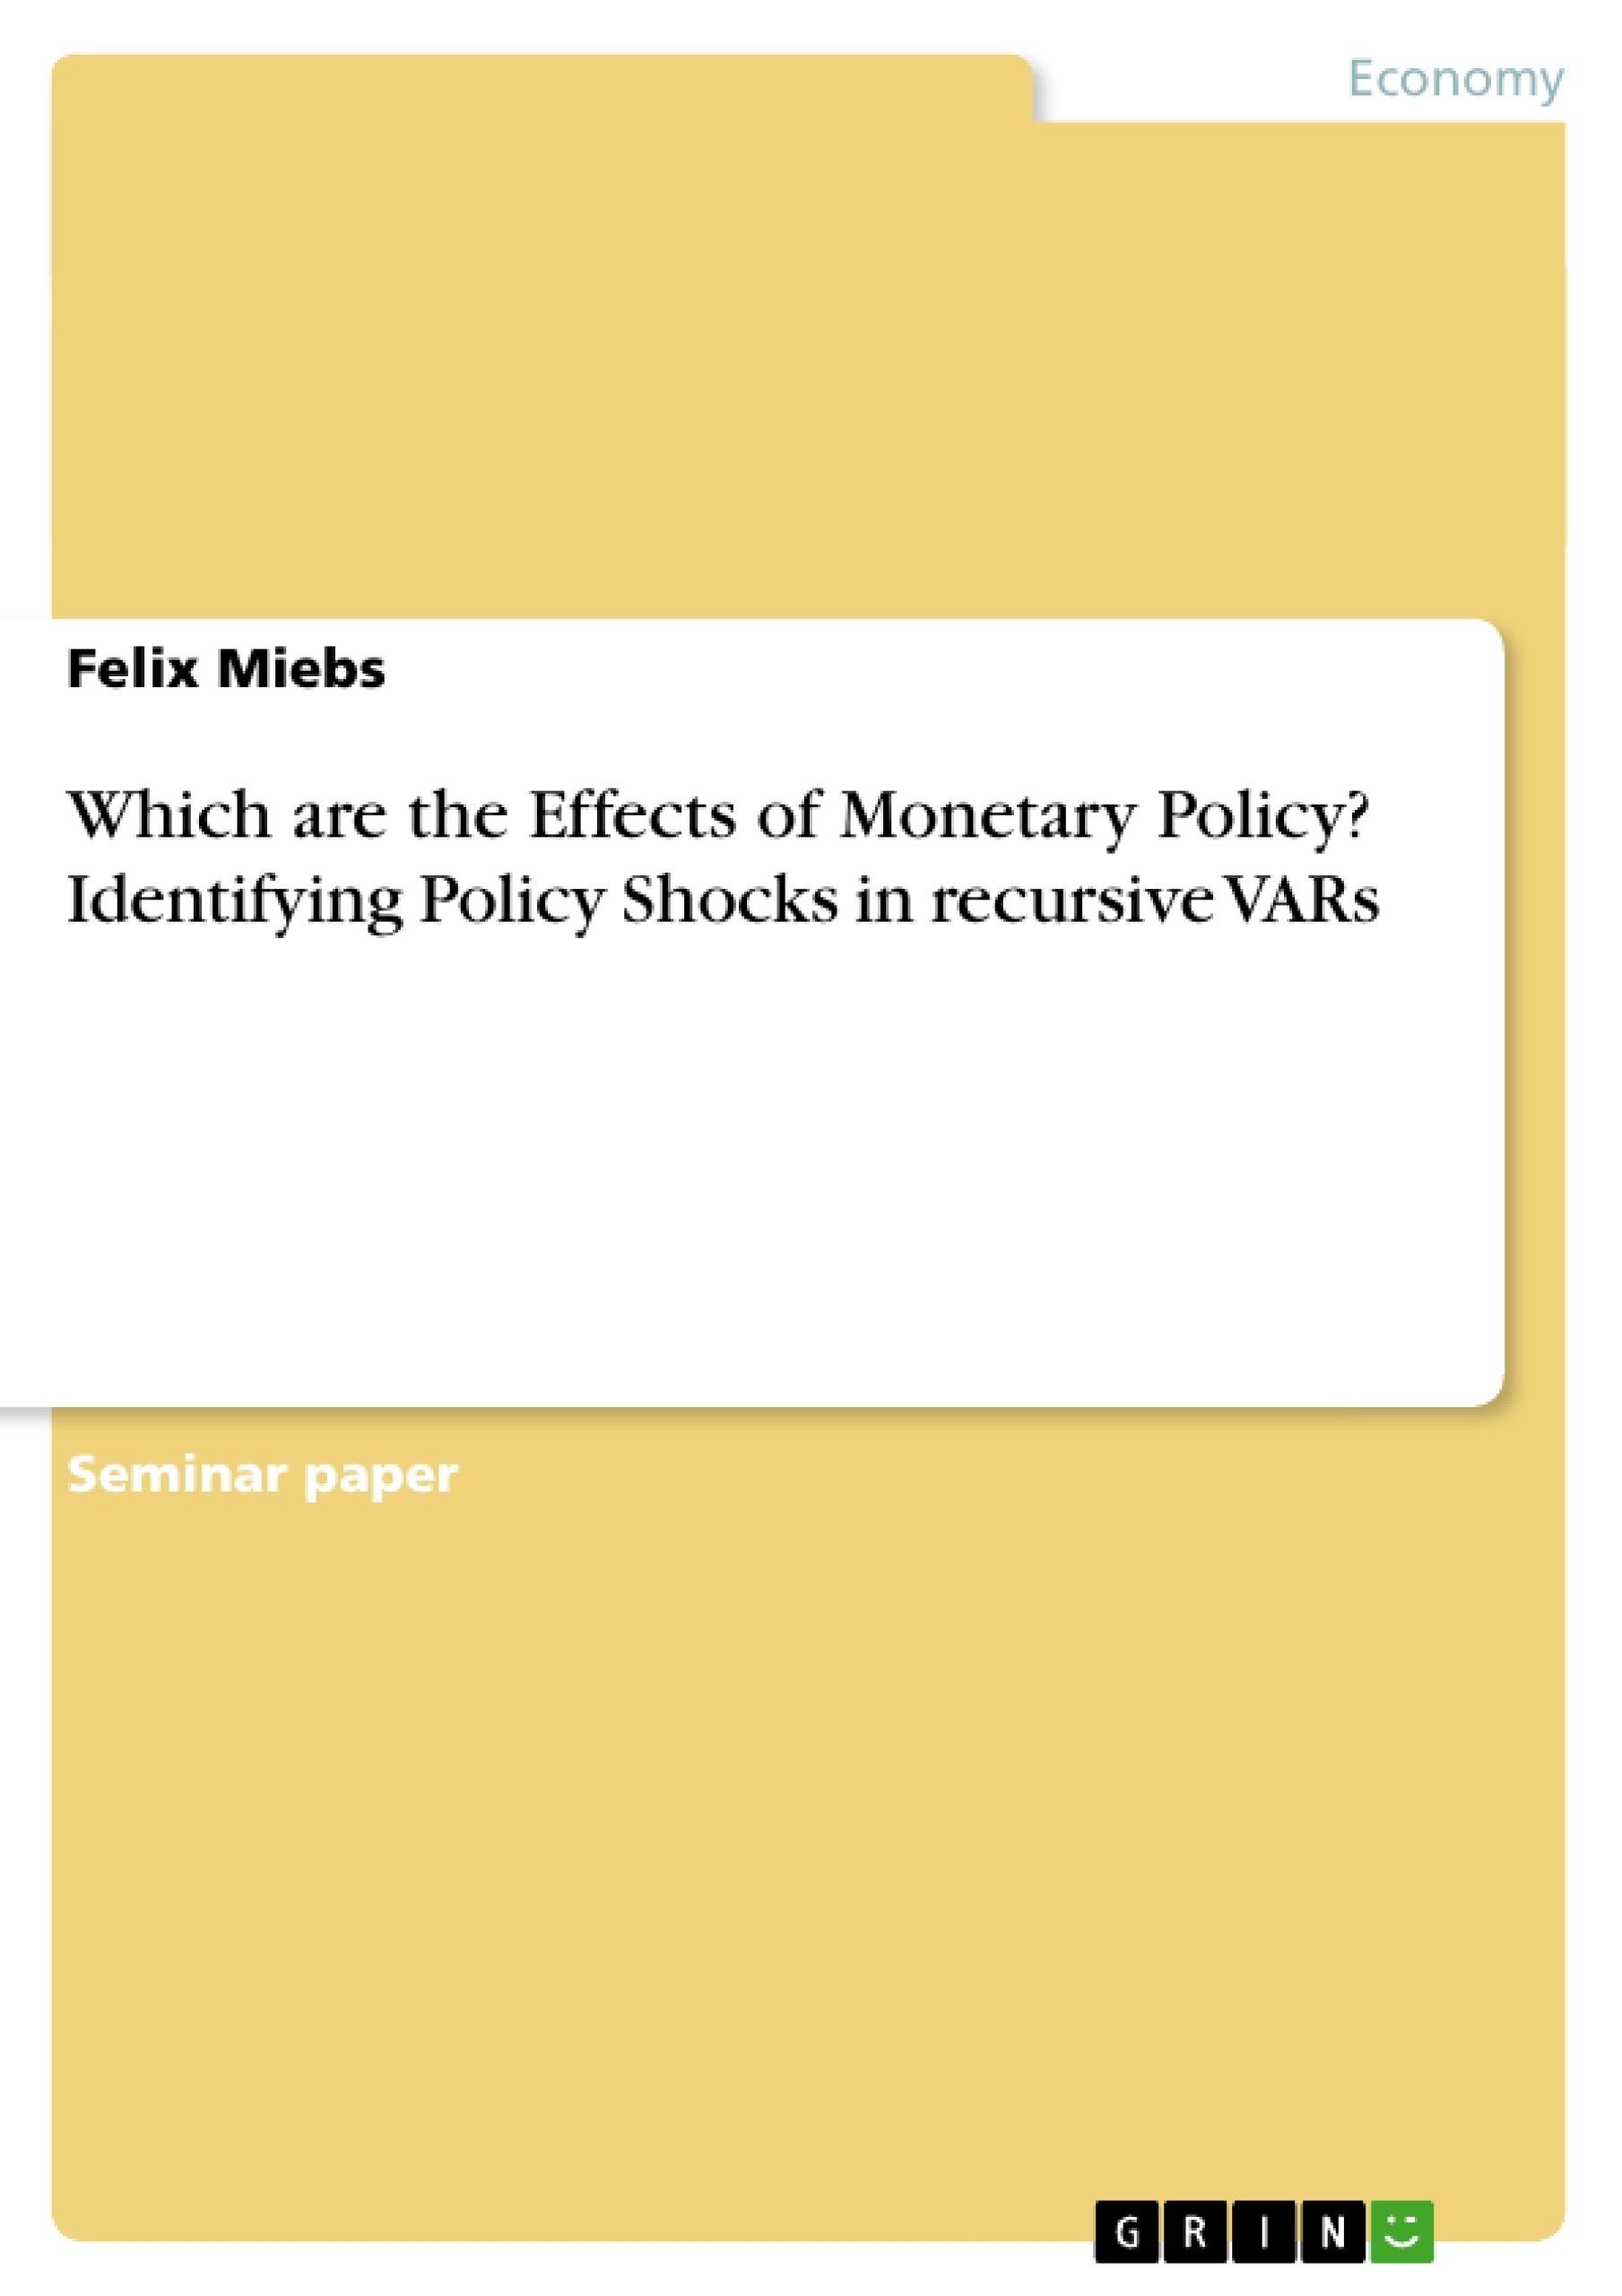 Title: Which are the Effects of Monetary Policy? Identifying Policy Shocks in recursive VARs